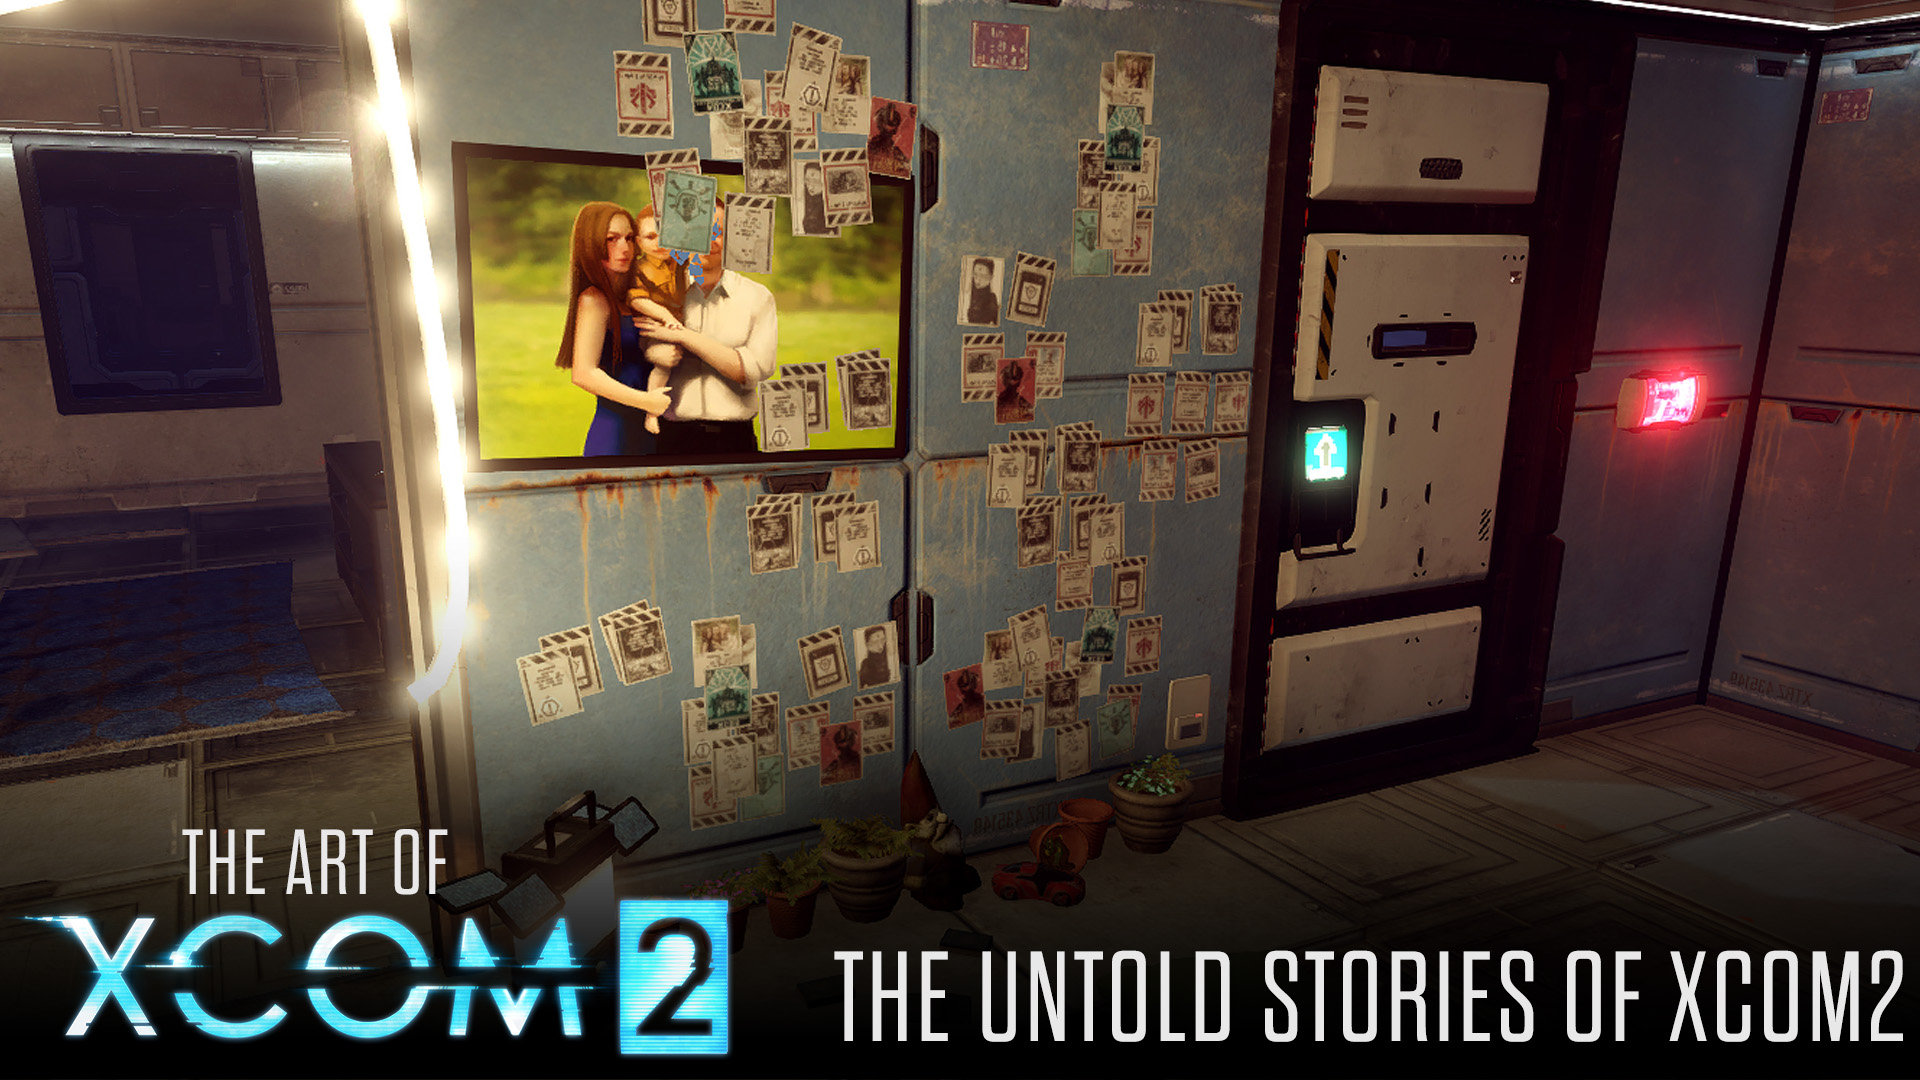 Xcom news the untold stories of xcom 2 the environment for every map you fought through in xcom 2 there was a story behind it literally each time the team worked on an environment for the game publicscrutiny Image collections